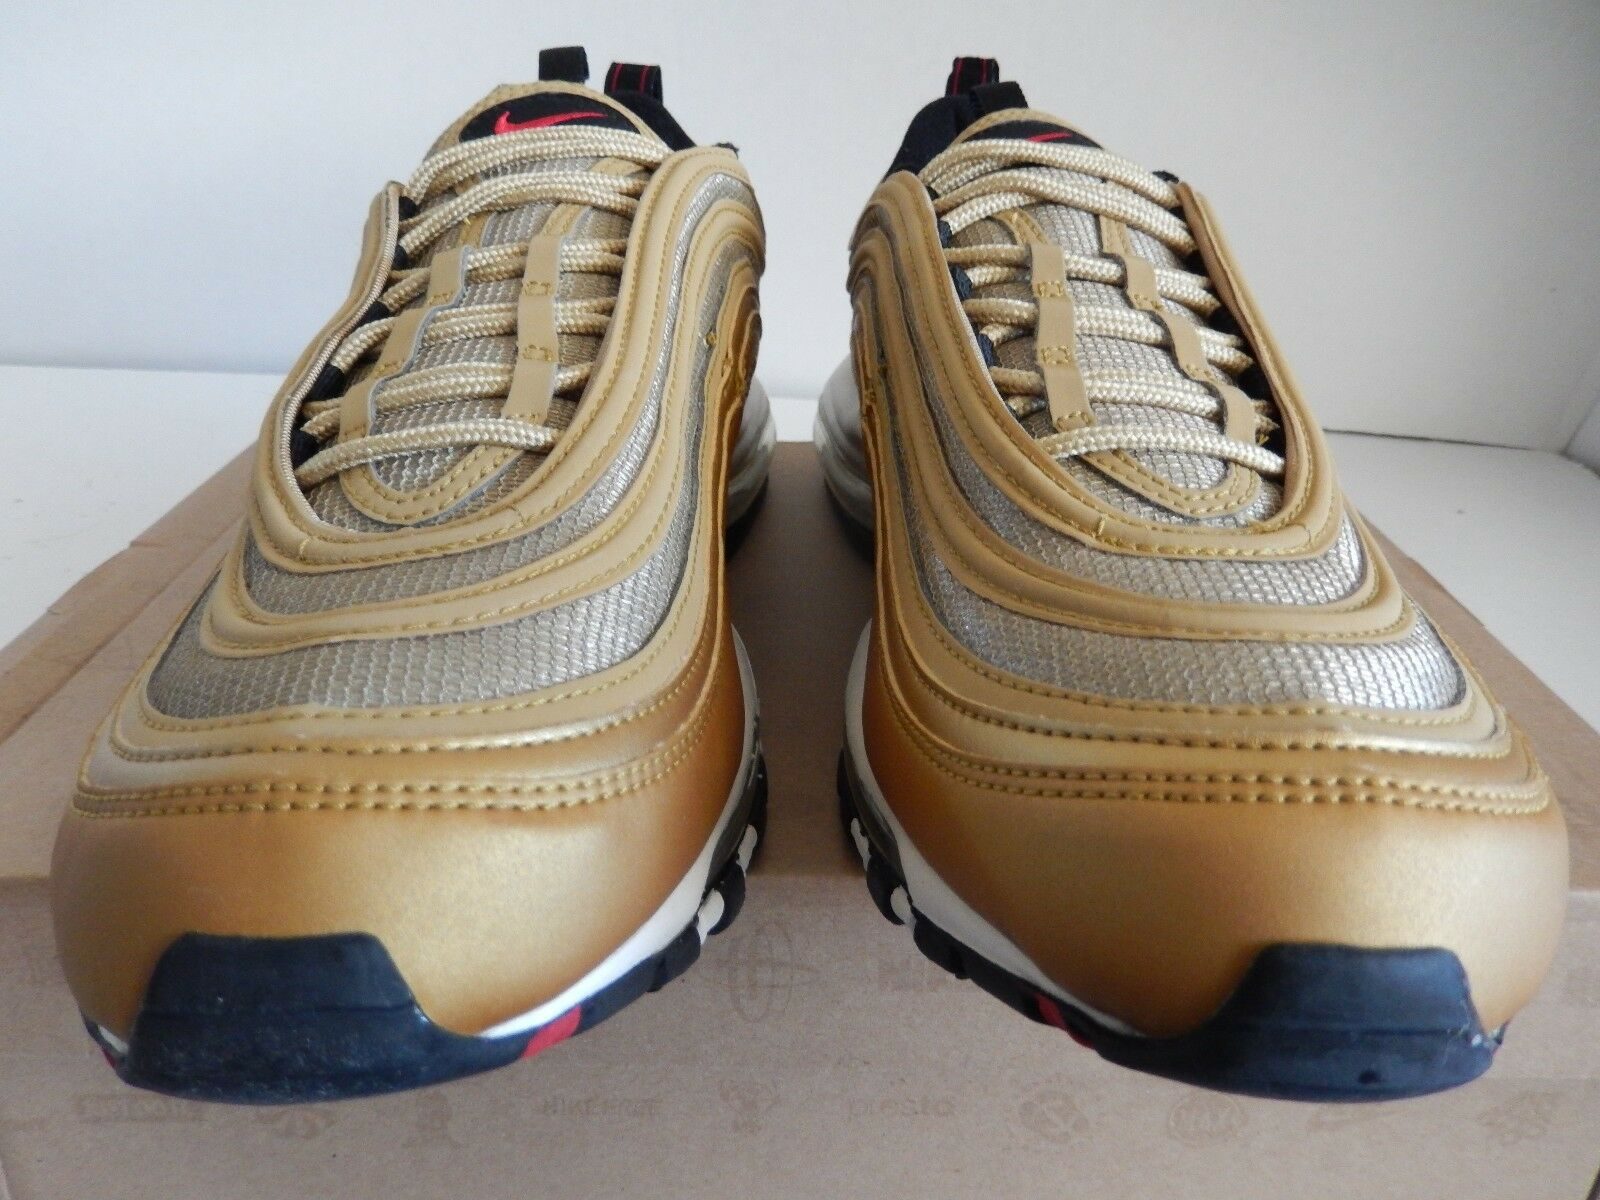 NIKE NIKE NIKE AIR MAX 97 METALLIC gold-RED-BLACK SZ 13  OLYMPIC RARE    [312641-700] ff7f02